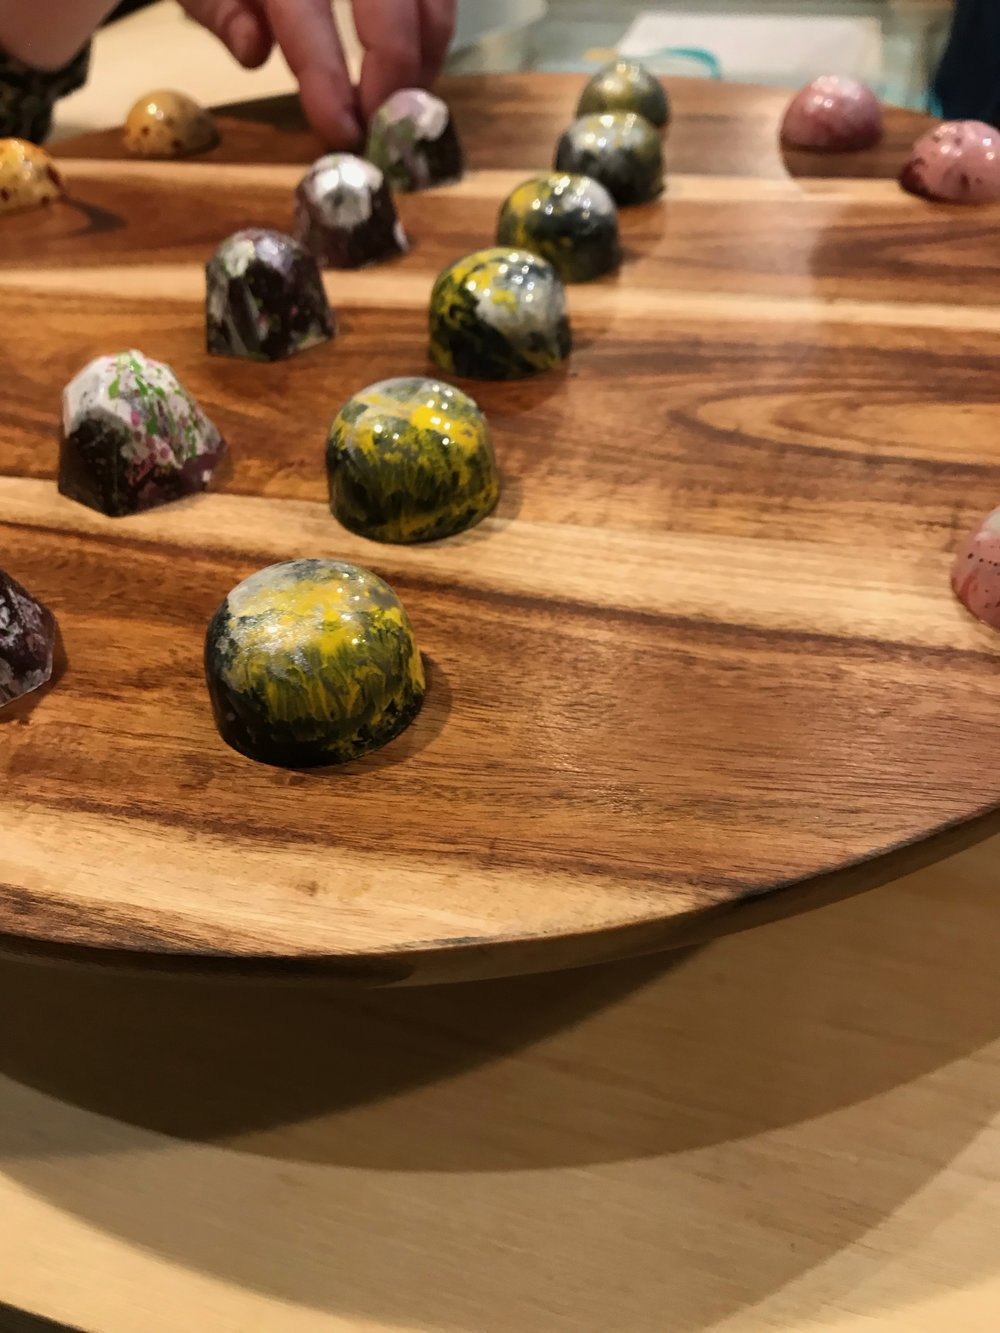 Each one of these sublime hand-painted chocolates from Farine + Four, Nebraska's only totally organic bakery, takes four days to make.